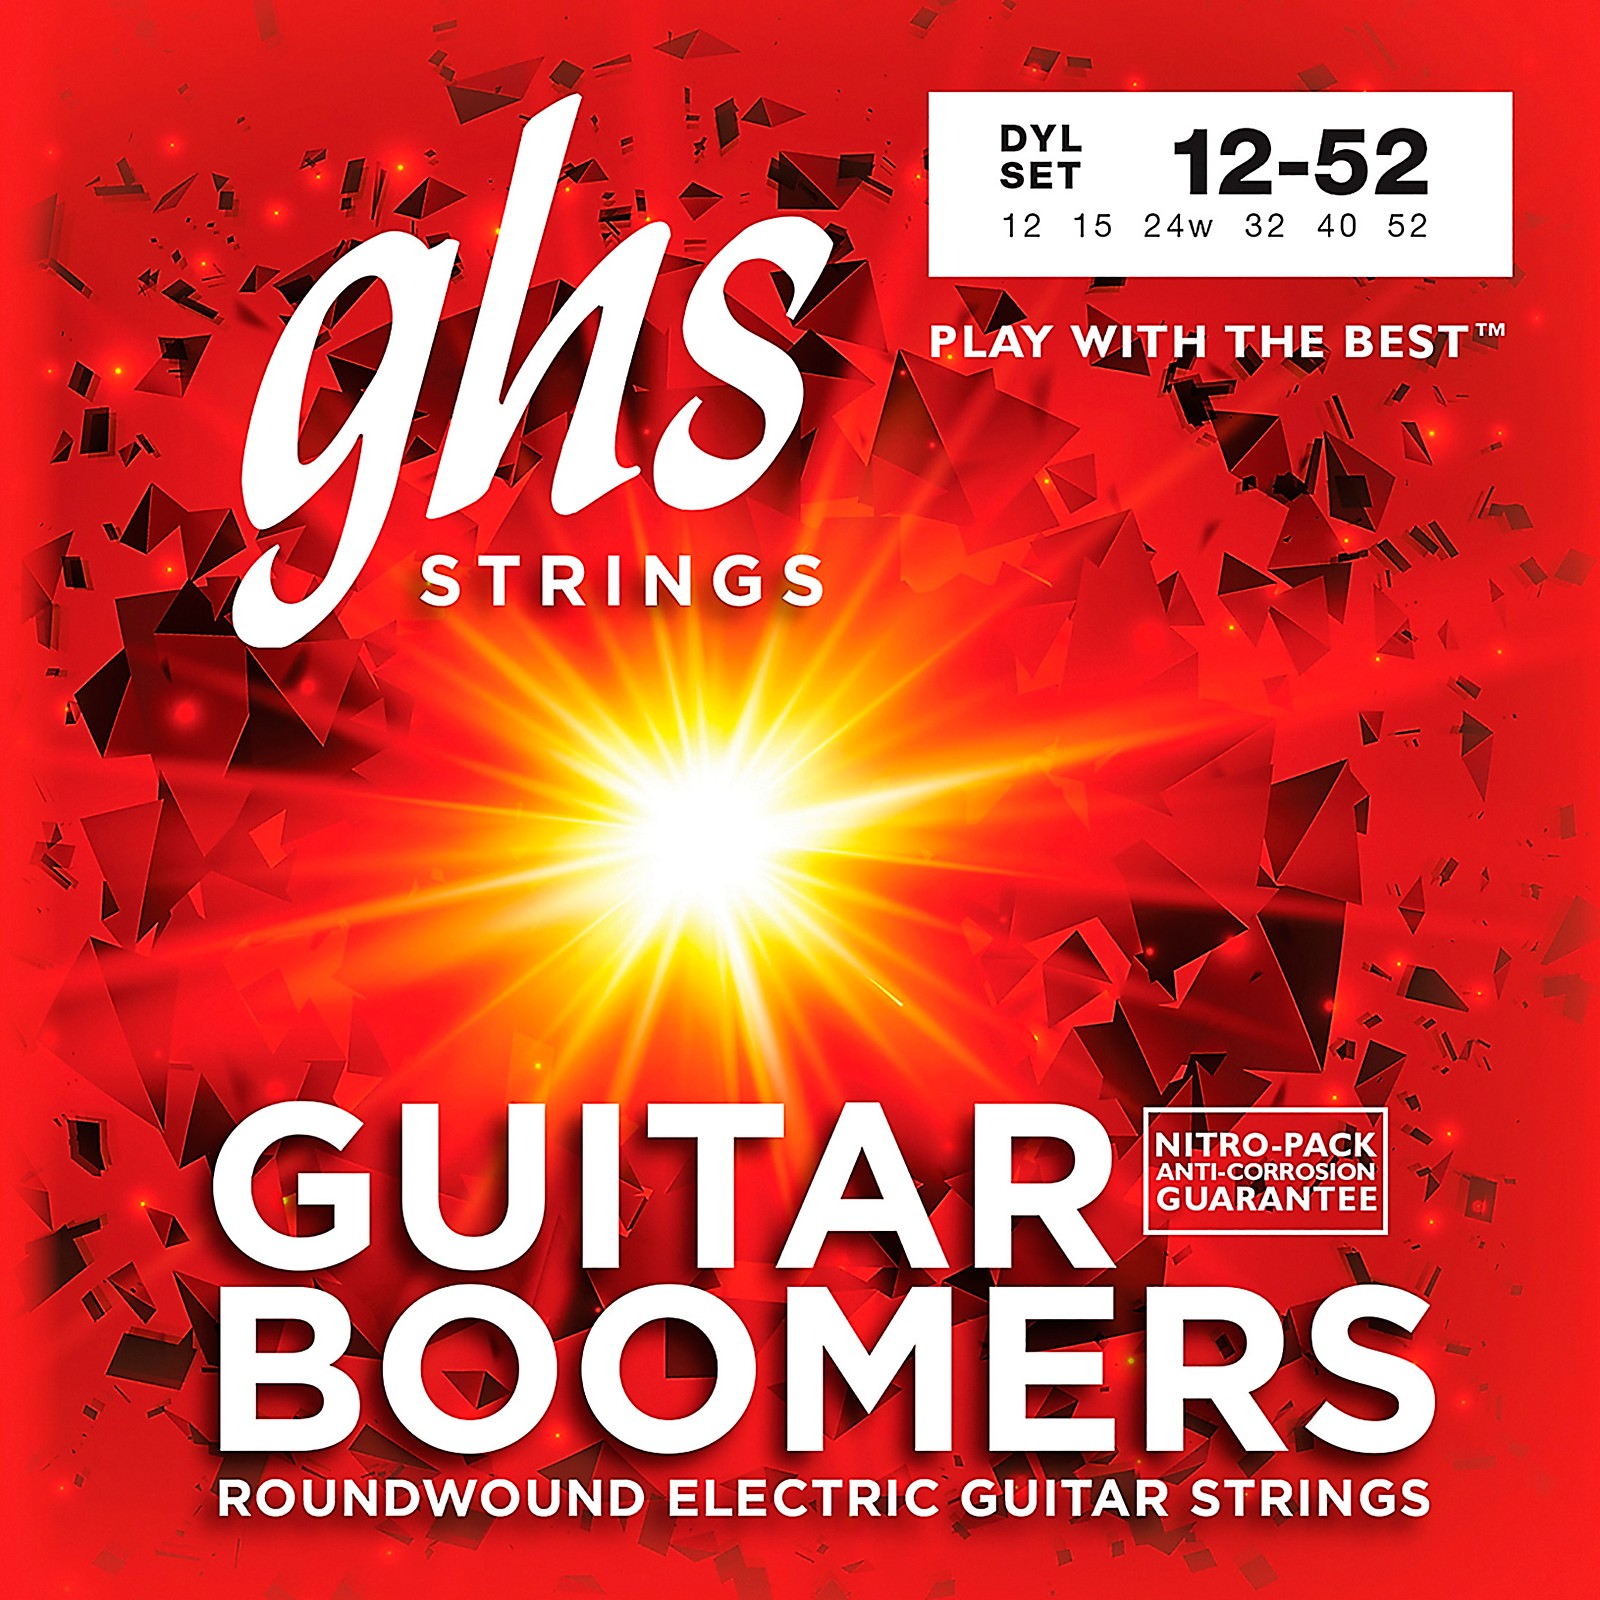 GHS DYL Boomers Light- Wound 3rd Electric Guitar Strings